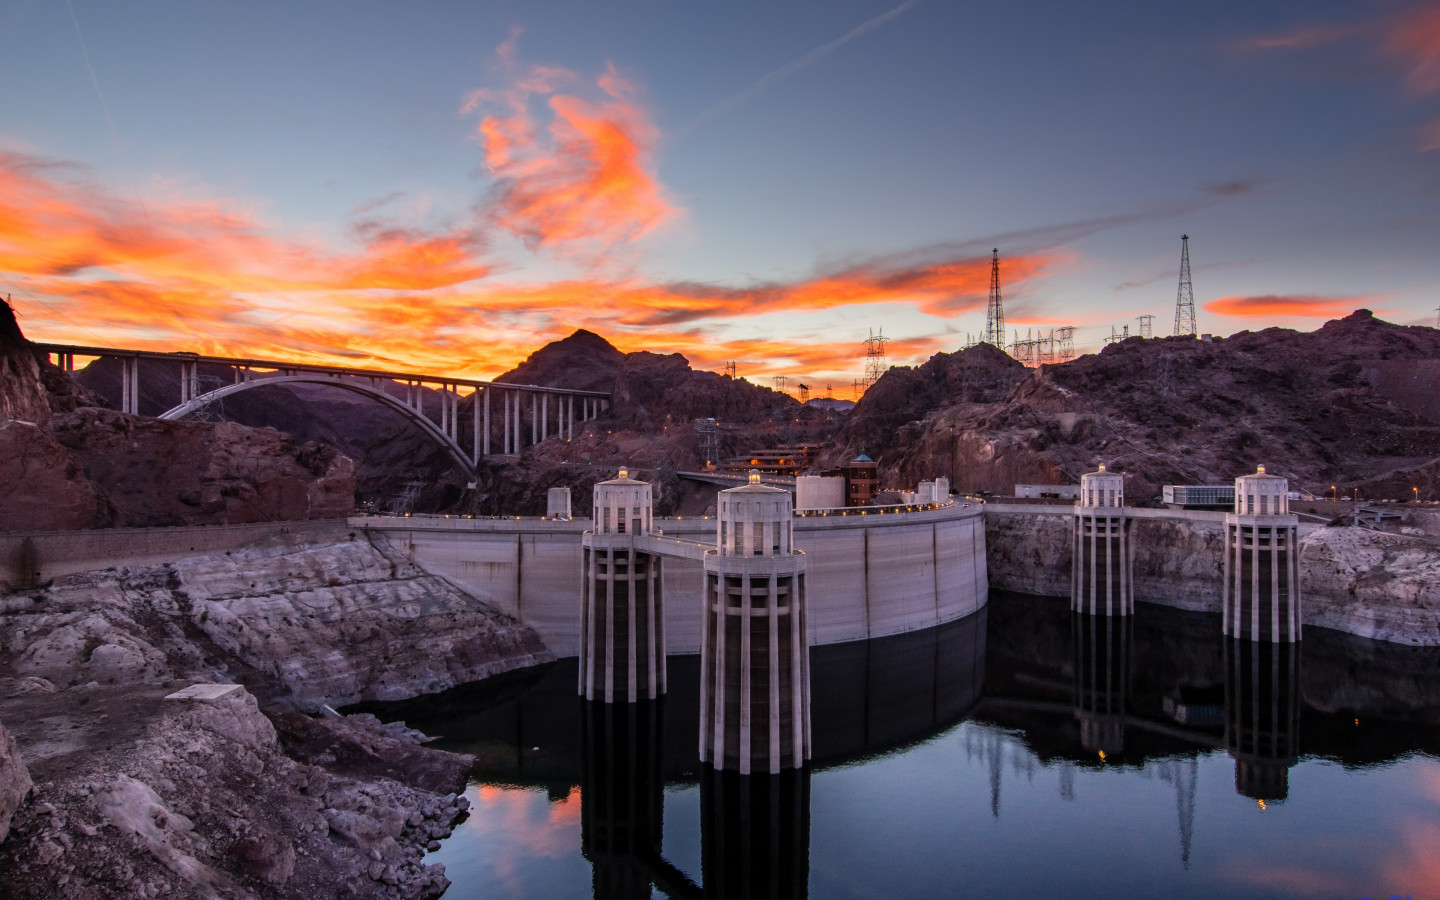 Hoover Dam at sunset wallpaper 1440x900